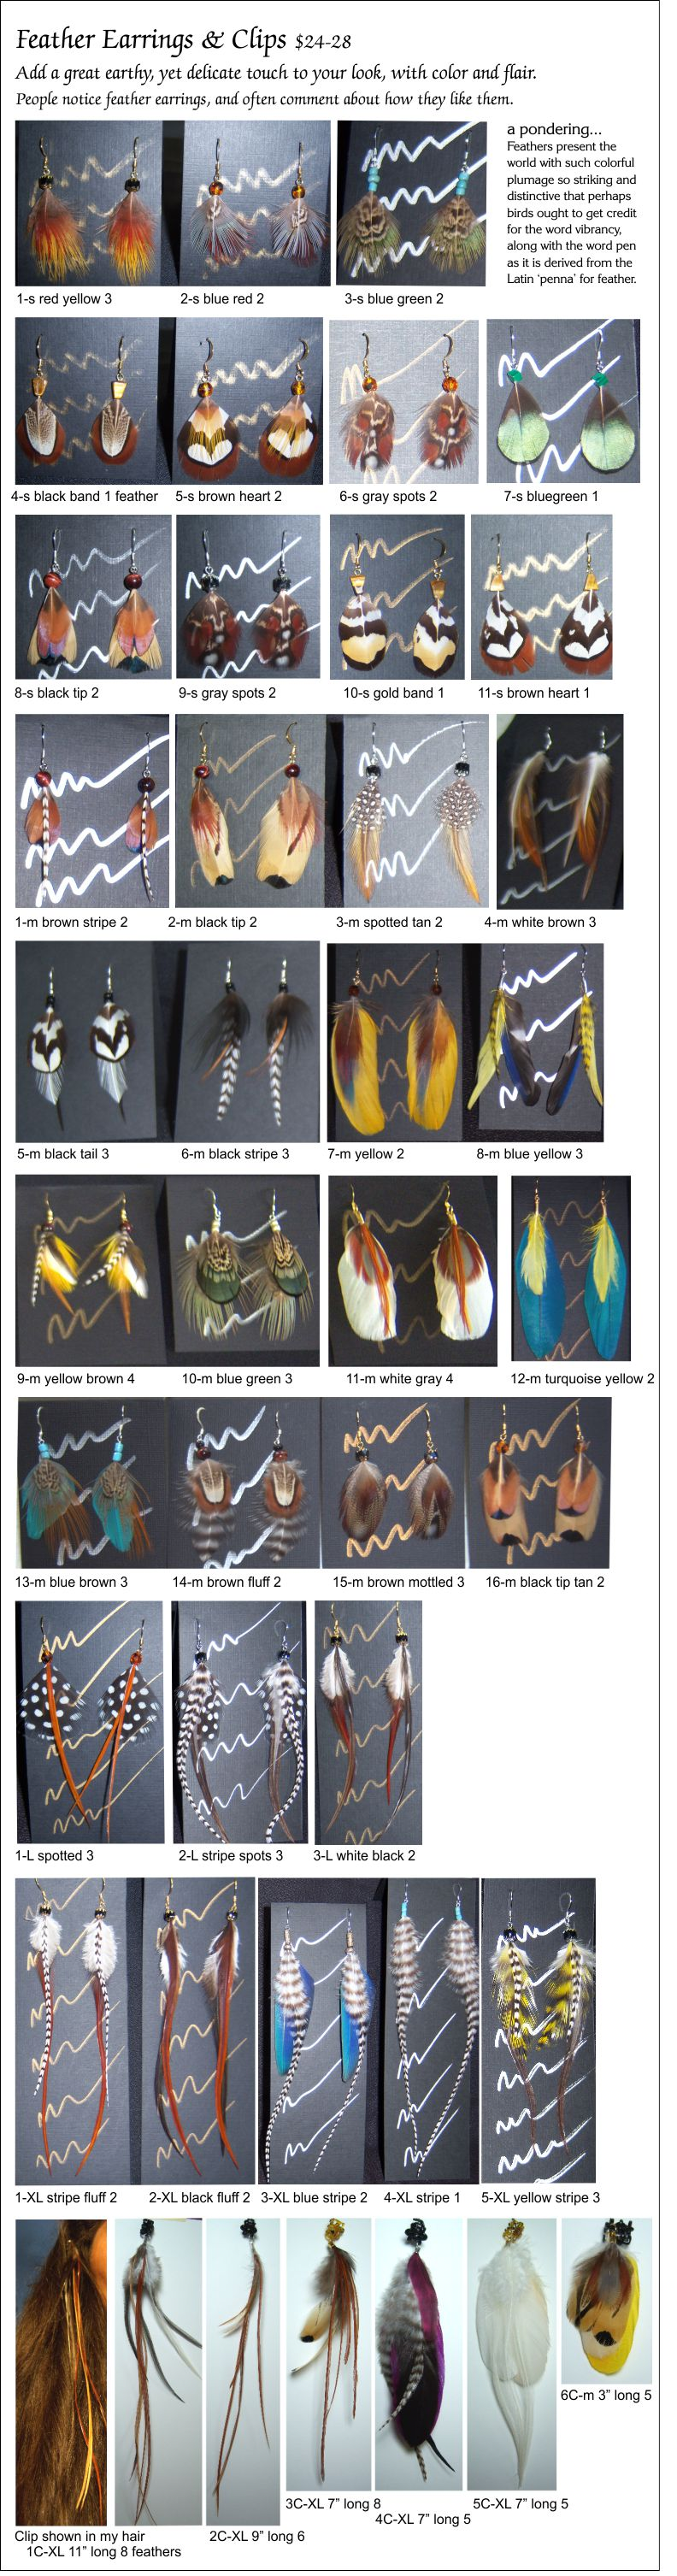 feather earring & clip images